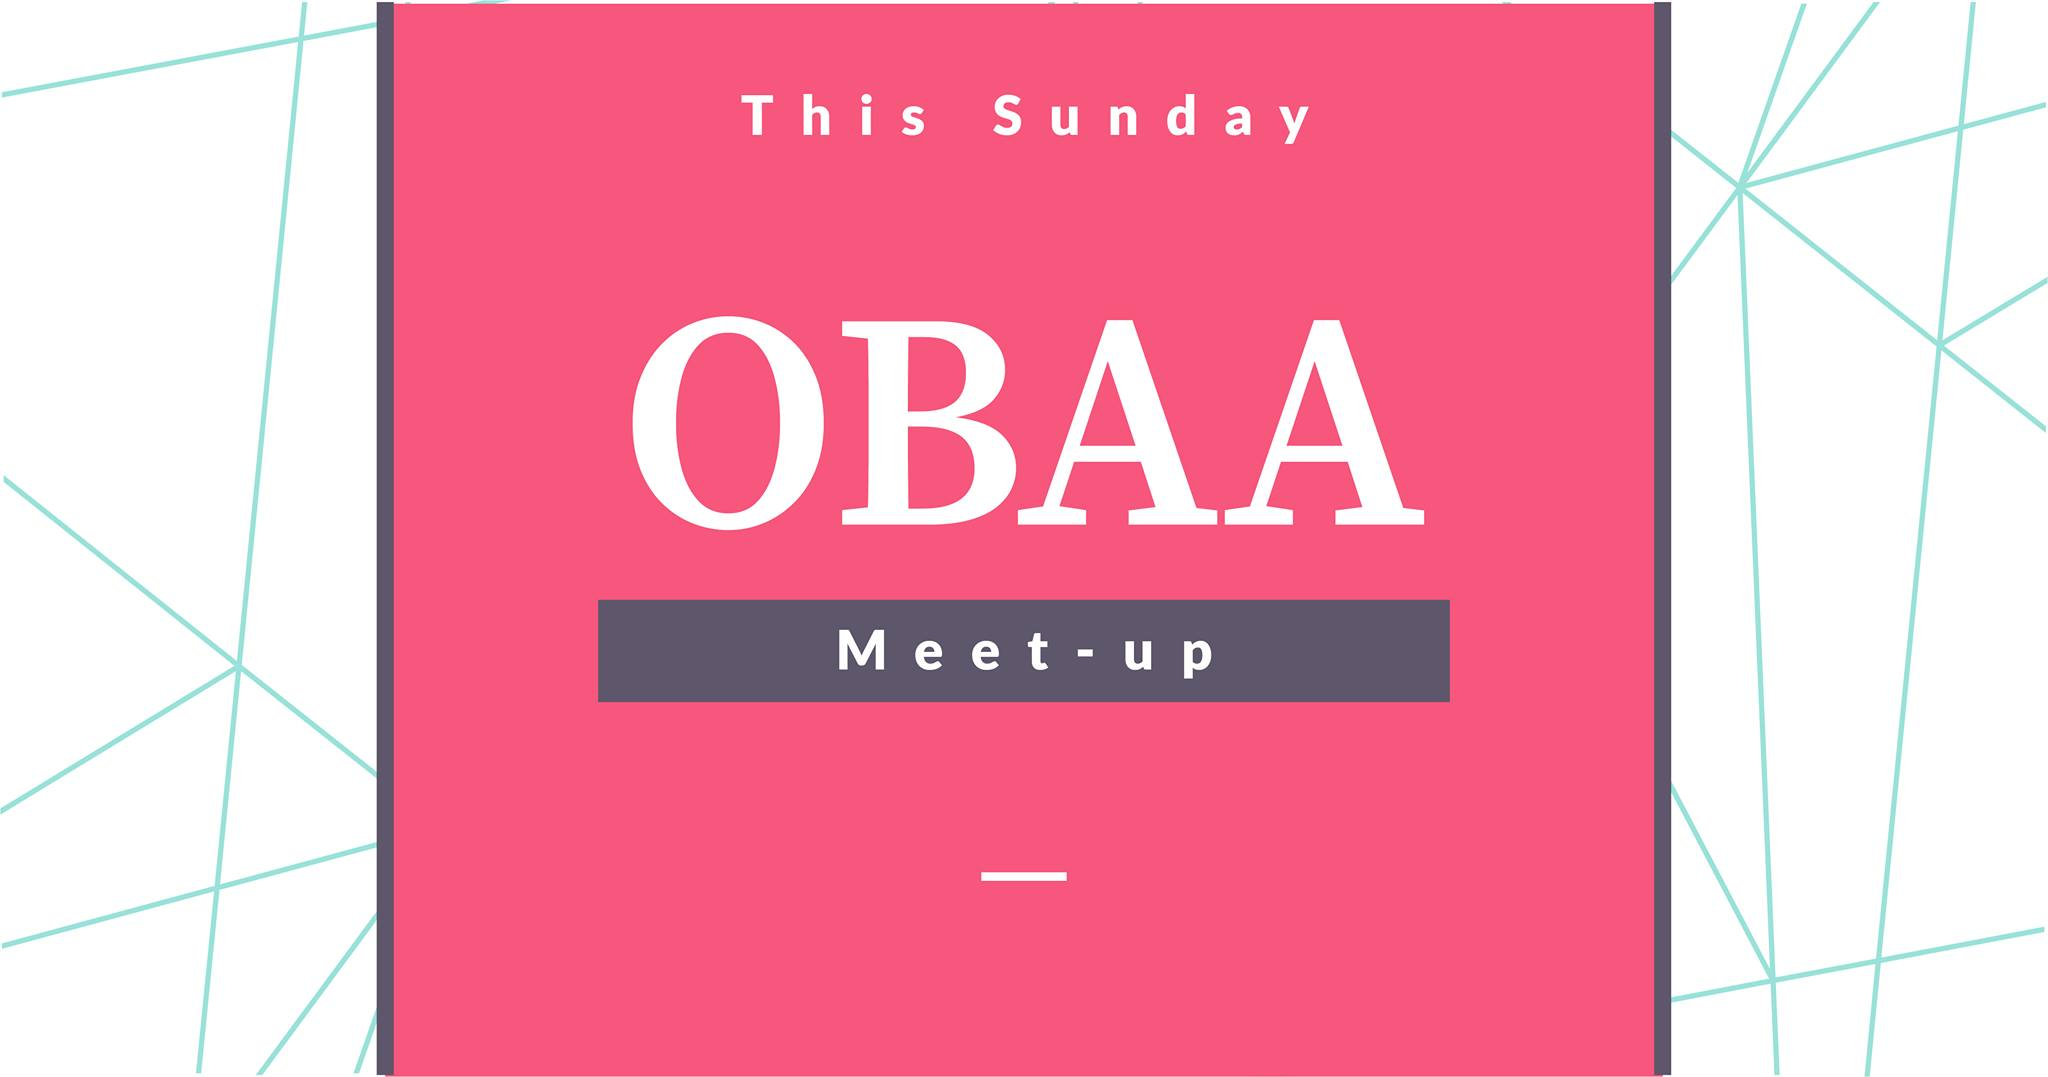 Søndag 10 februar 2019 - OBAA Meet-up: The rising of an old tradition